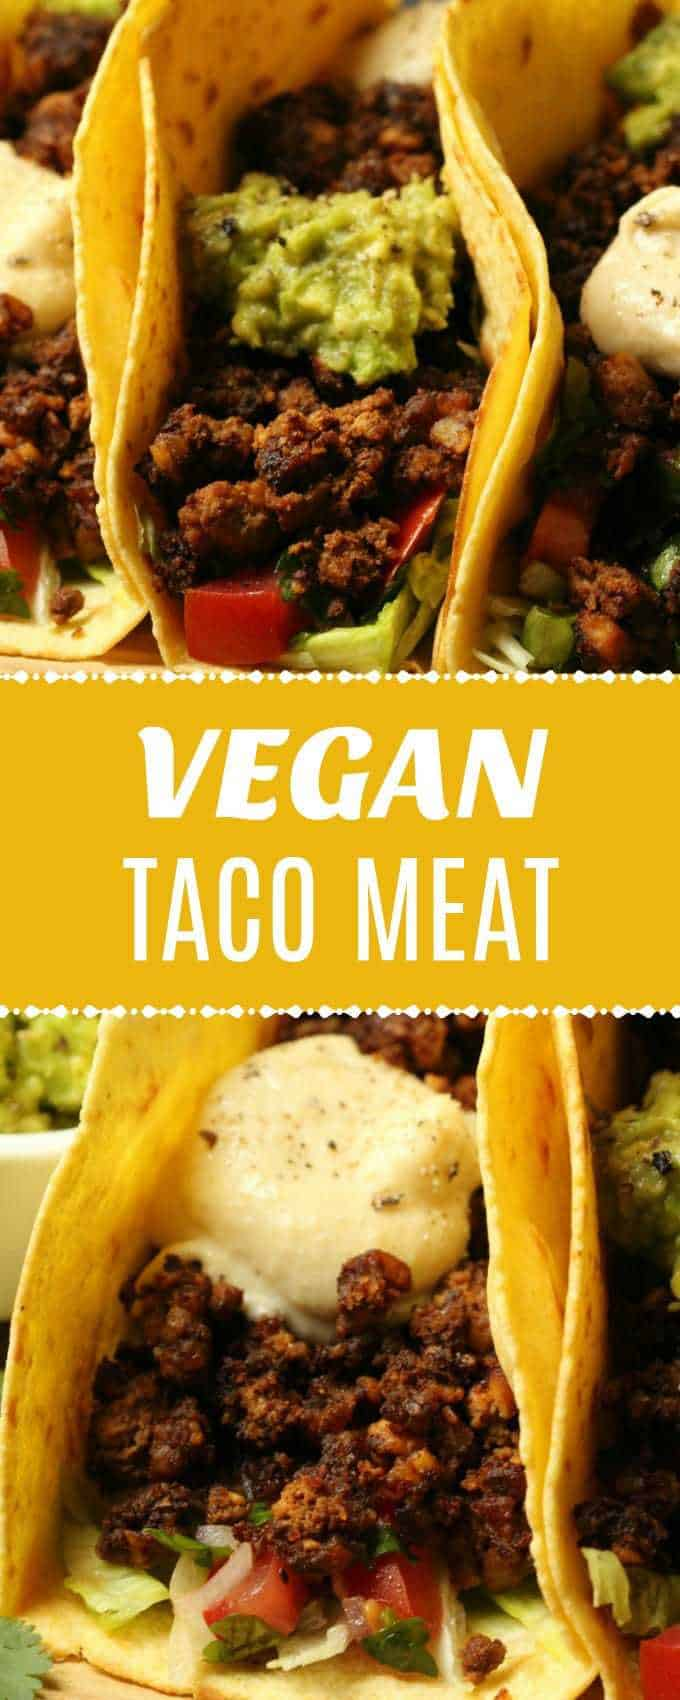 Chewy and 'meaty' vegan taco meat! High in protein, versatile and crazy delicious, this tofu and walnut taco meat is ideal in your tacos or over the top of your nachos! | lovingitvegan.com